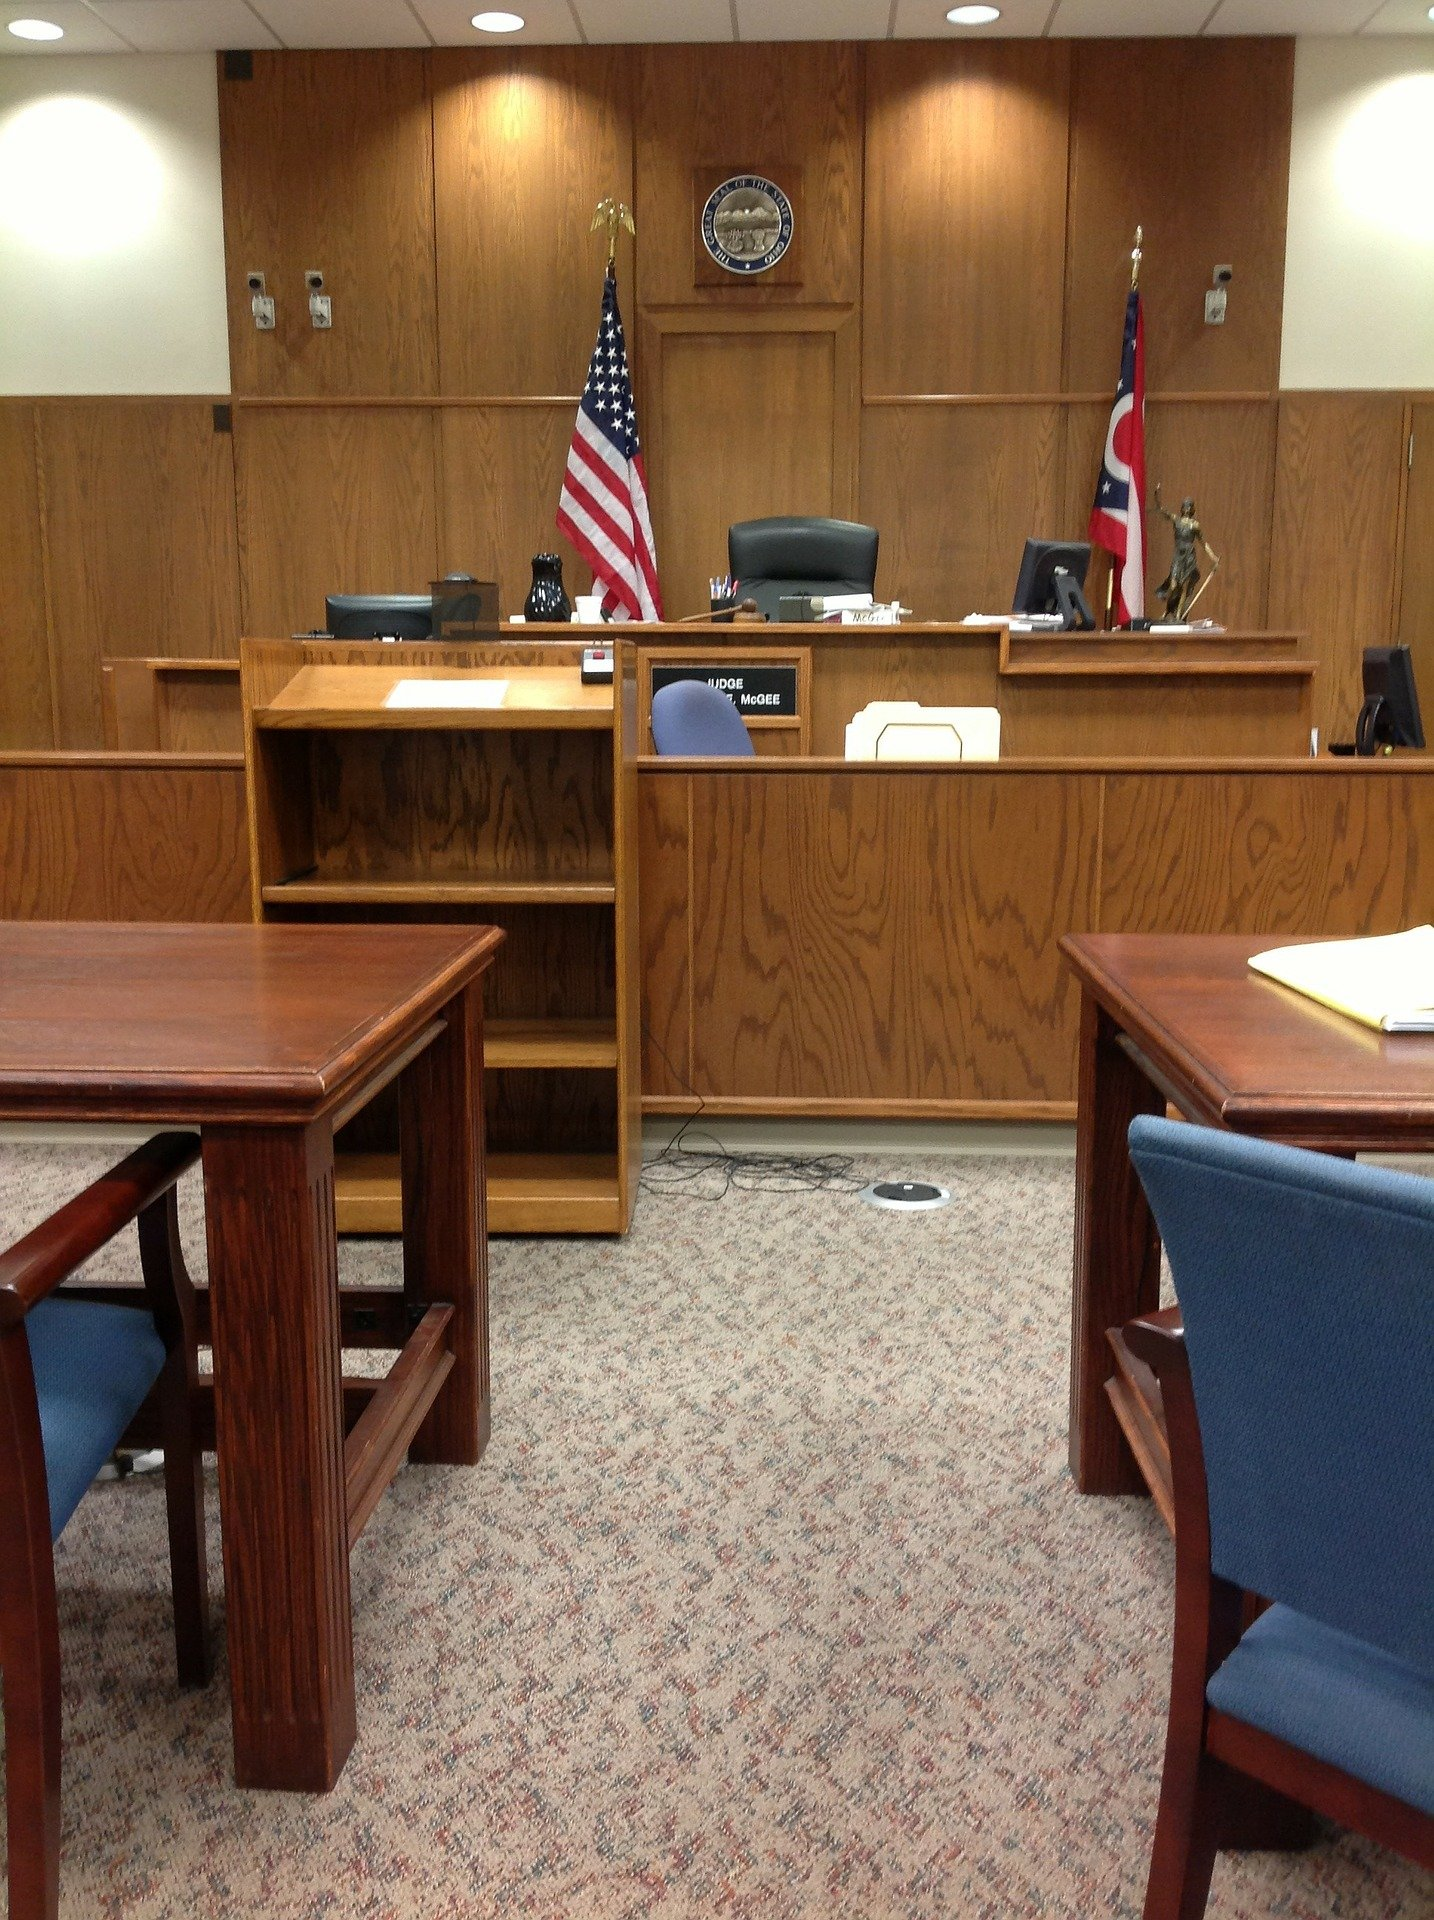 A view of a chairman's bench in an American courtroom   Photo: Pixabay/ohioduidefense